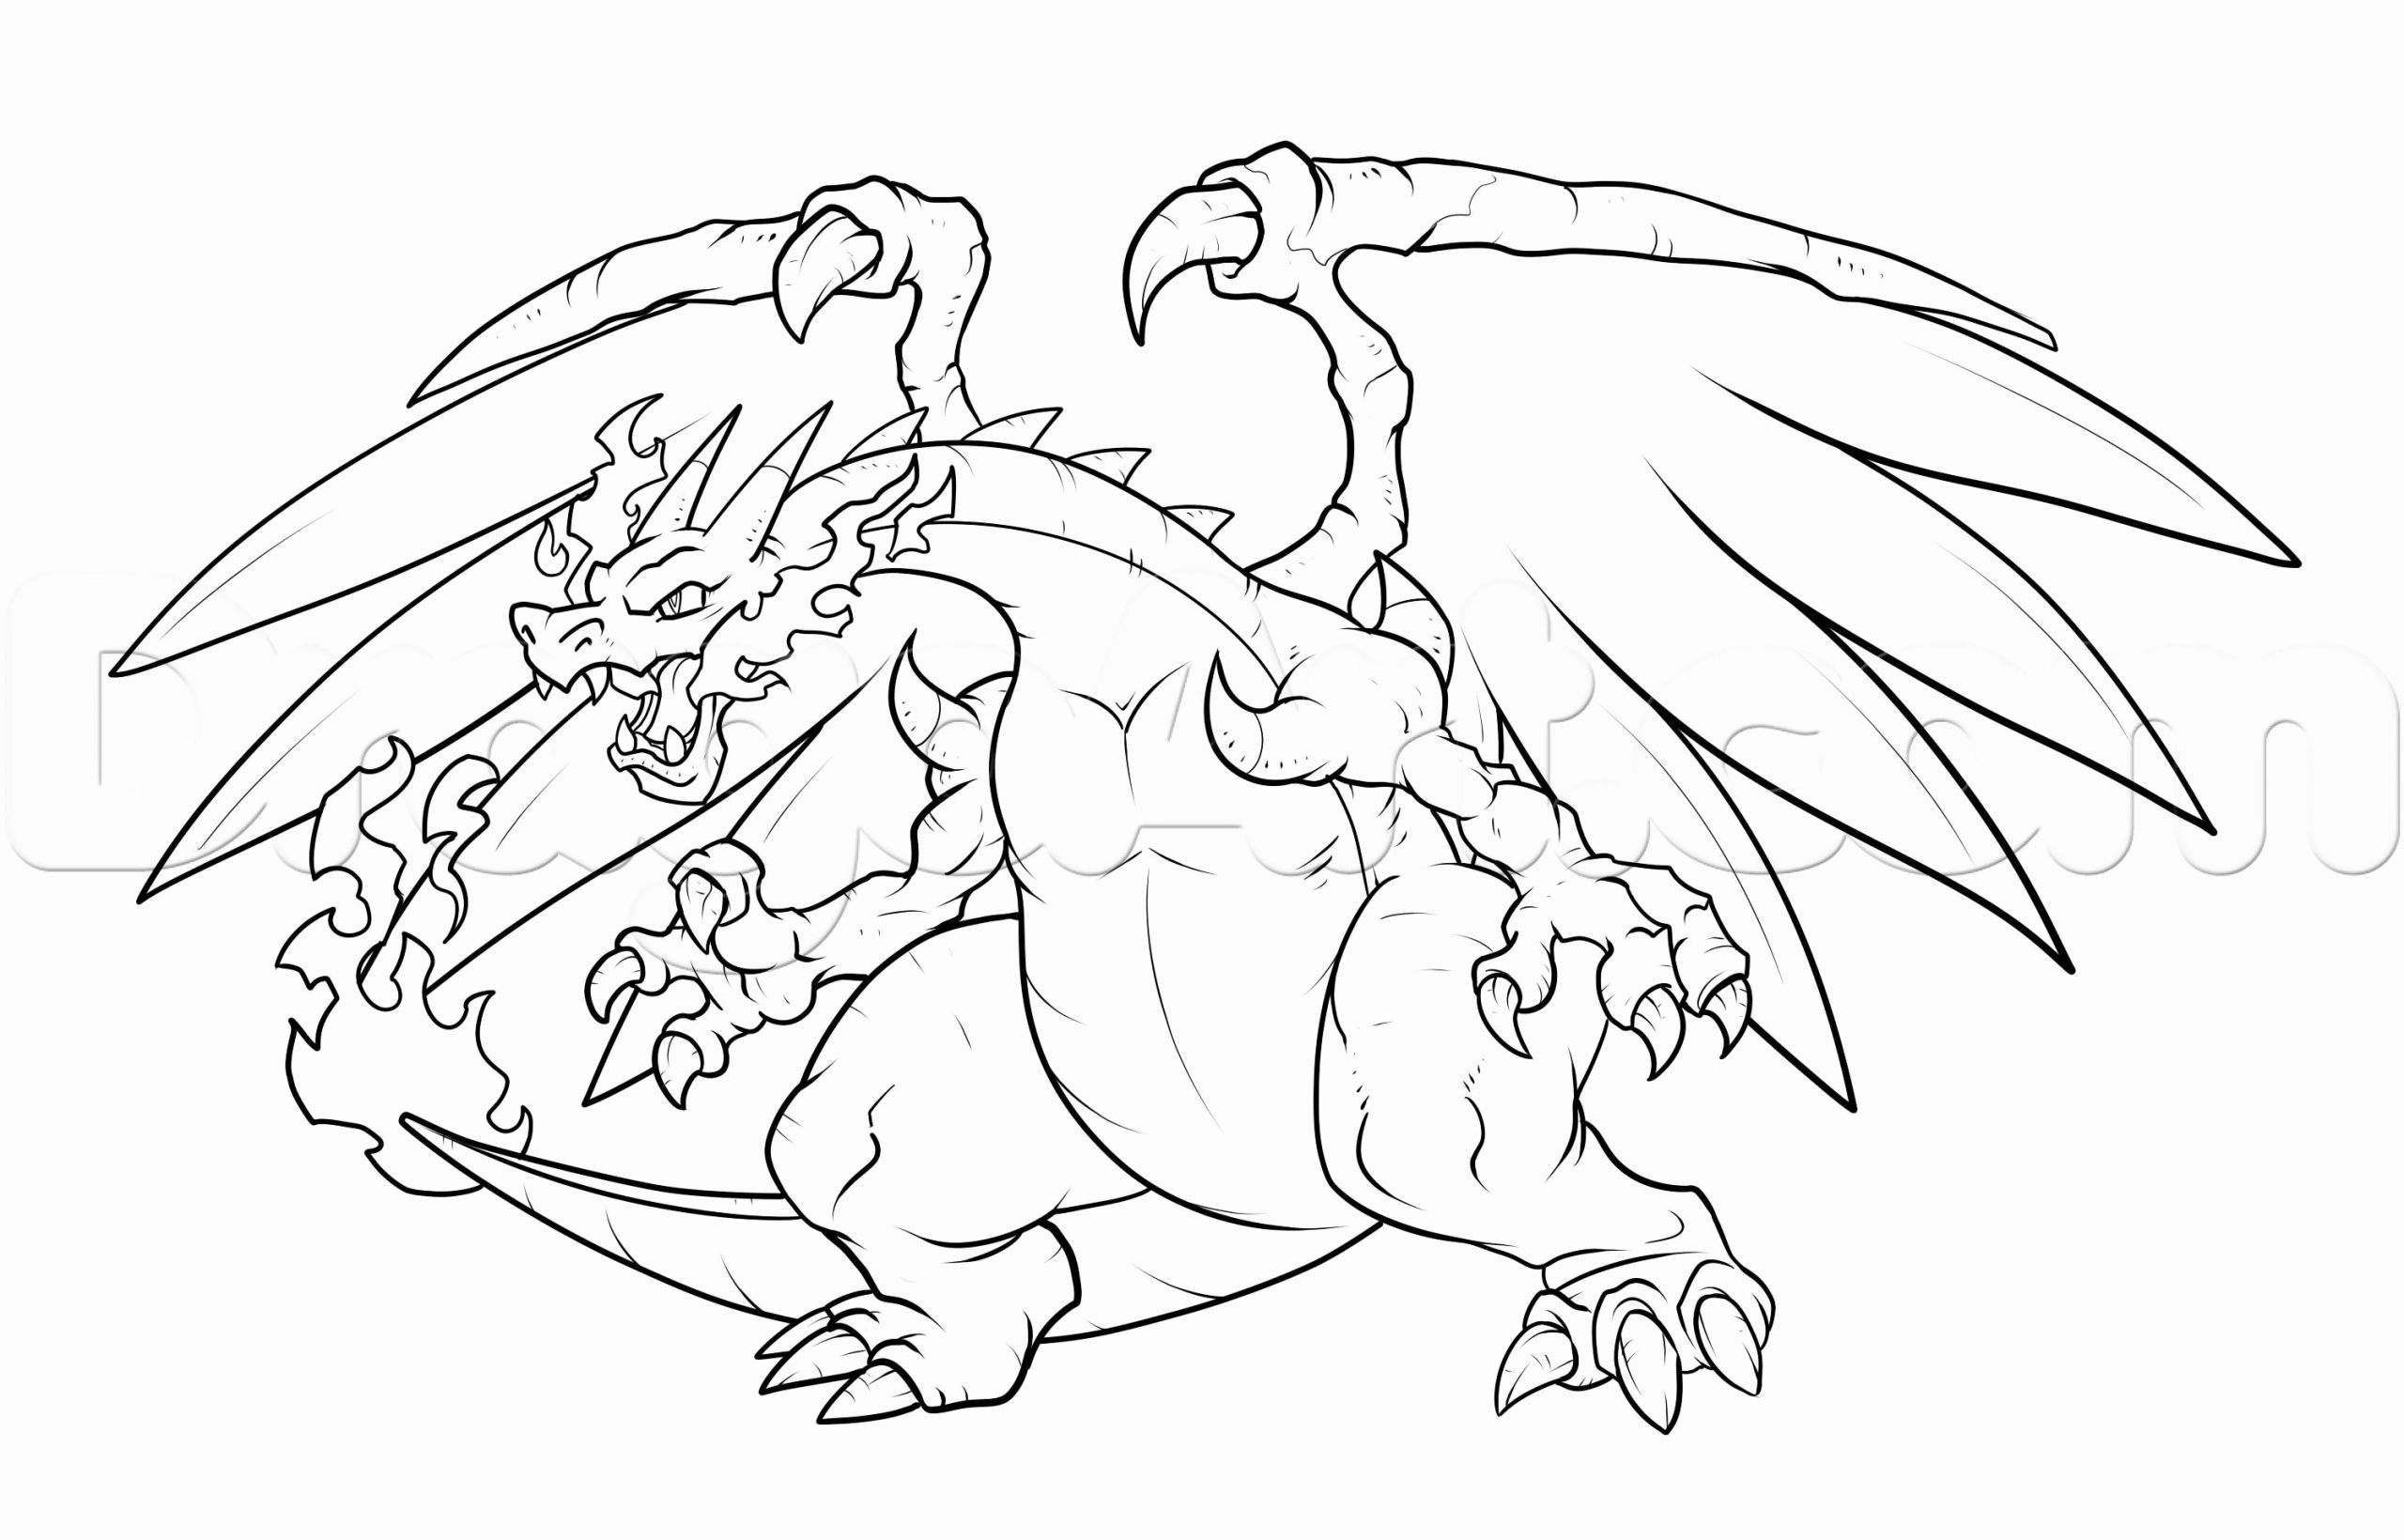 Mega Charizard X Coloring Page Inspirational Pokemon Coloring Pages Mega Mewtwo X From The Th Pokemon Coloring Pages Moon Coloring Pages Space Coloring Pages